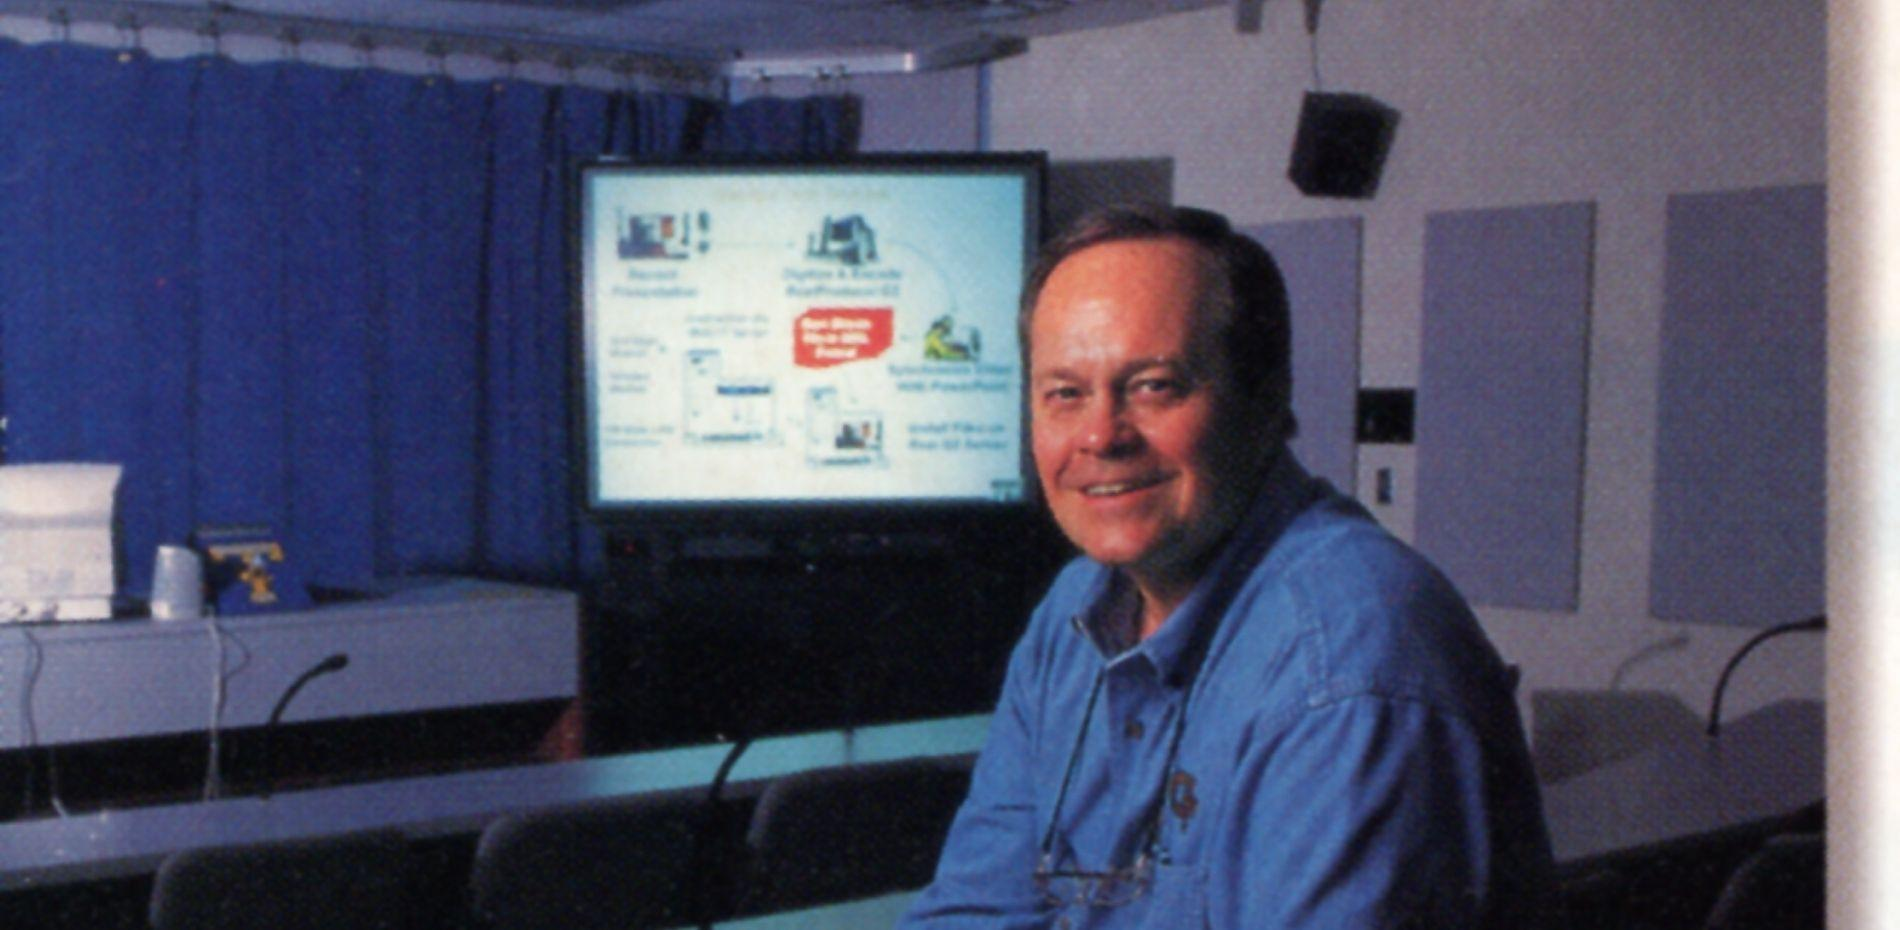 George Wright, director of georgia tech online